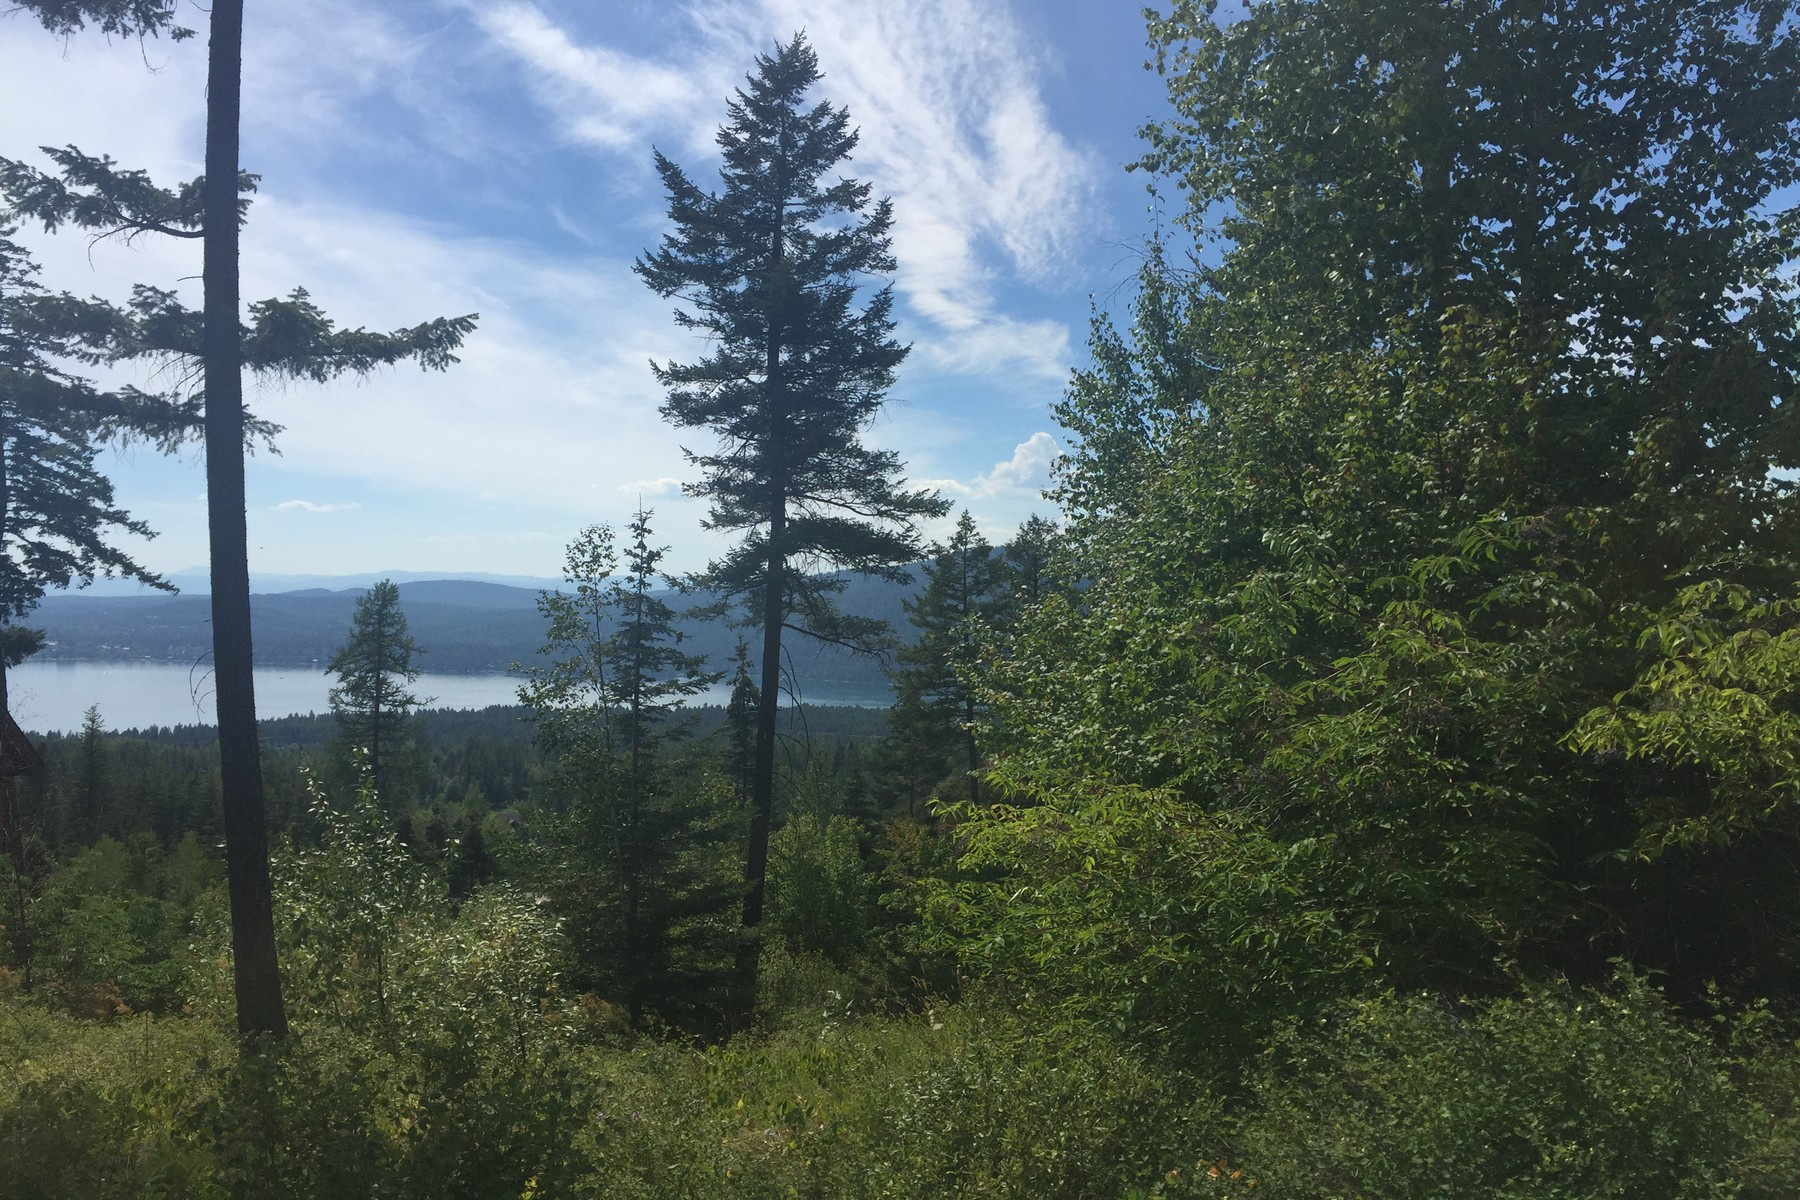 Land for Sale at 117 S Shooting Star Cir , Whitefish, MT 59937 117 S Shooting Star Cir Whitefish, Montana 59937 United States